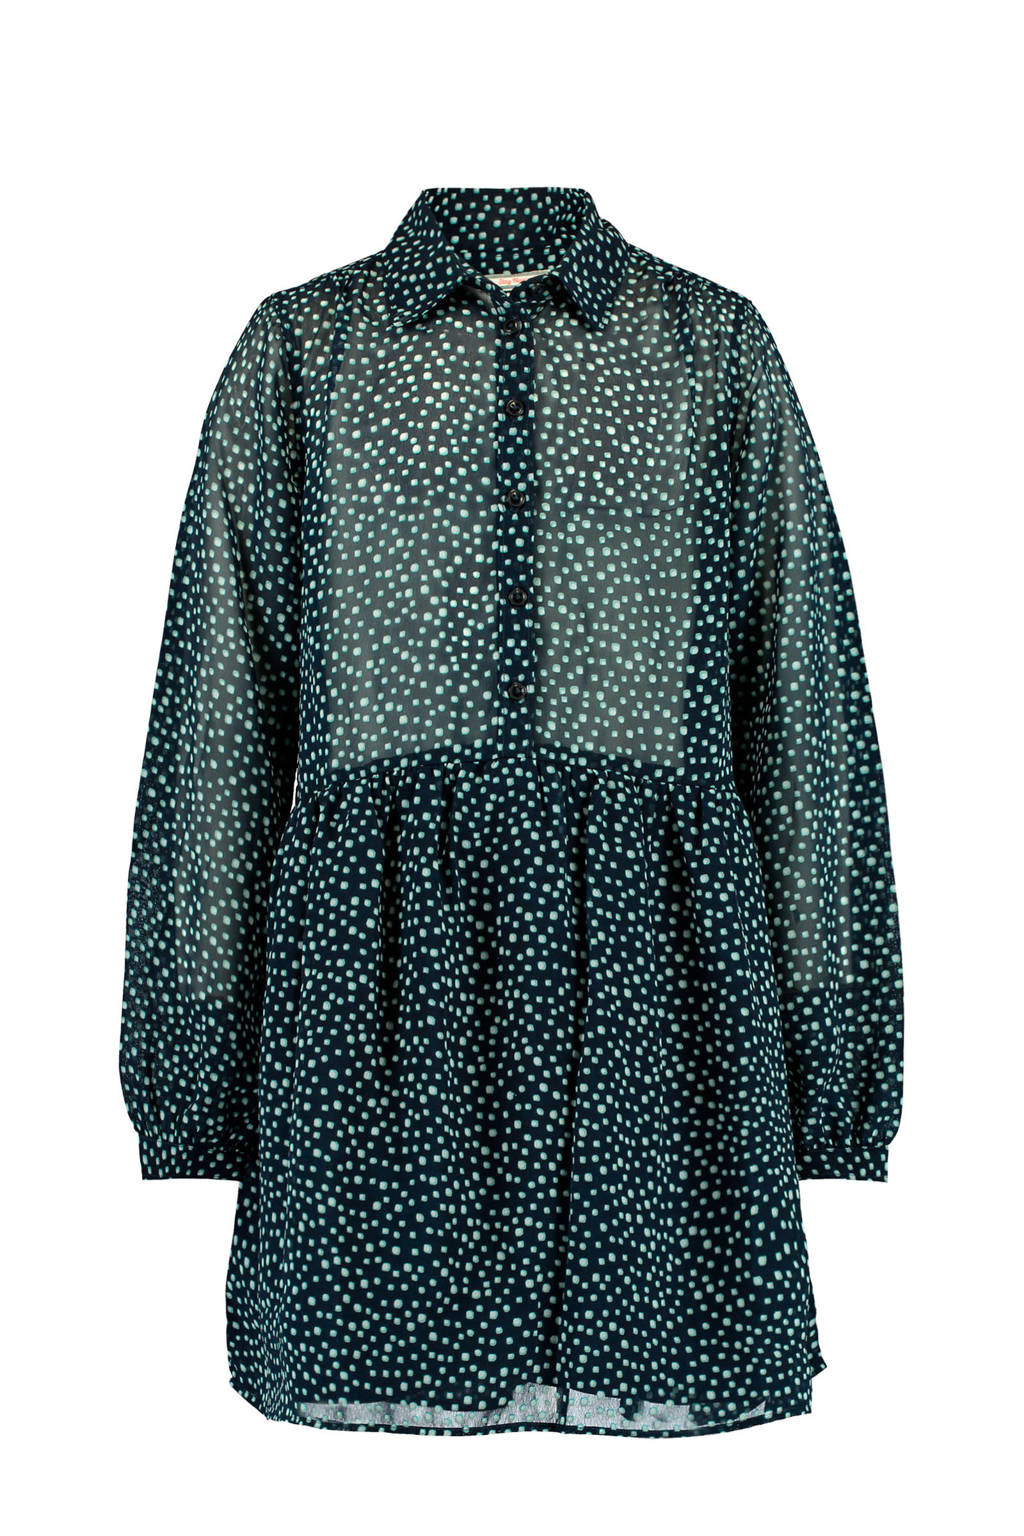 America Today Junior blousejurk Dione met all over print donkerblauw/wit, Donkerblauw/wit